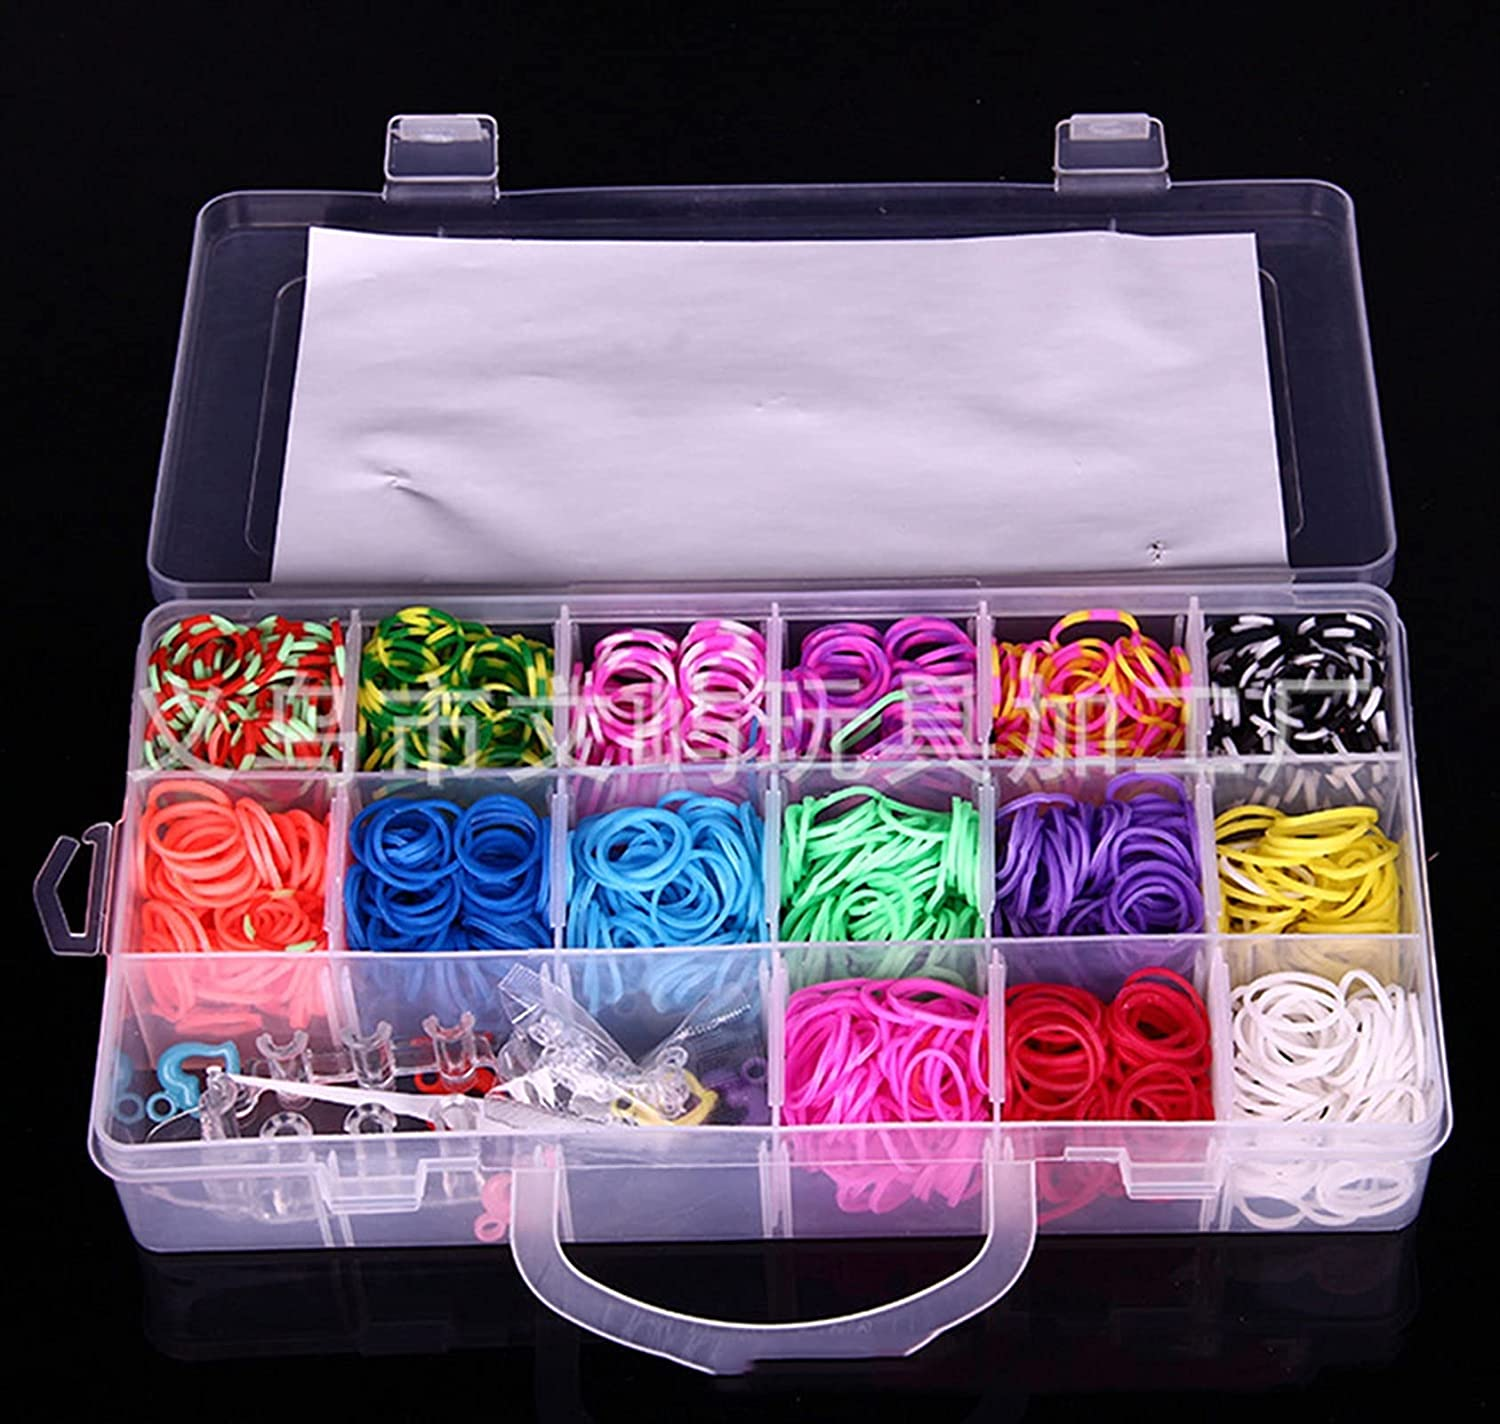 HWYJ Rubber Band Limited time Super-cheap sale Bracelet 2000Rubber Elasti Loom Weave Box Bands